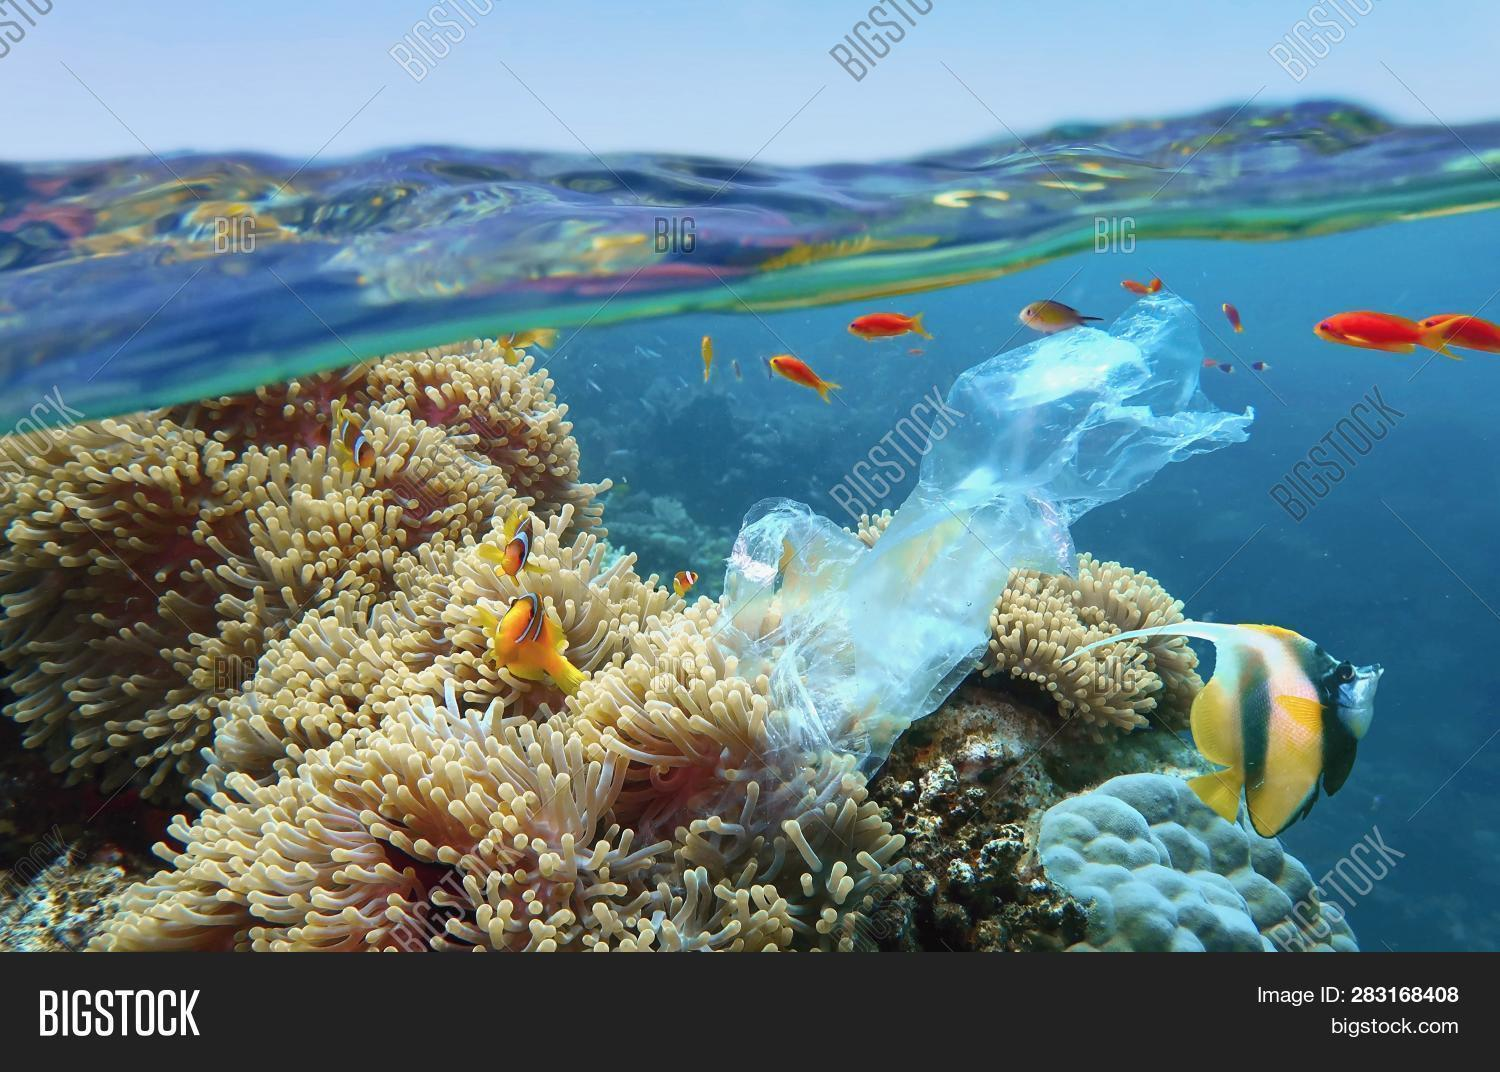 World Ocean Pollution Image Amp Photo Free Trial